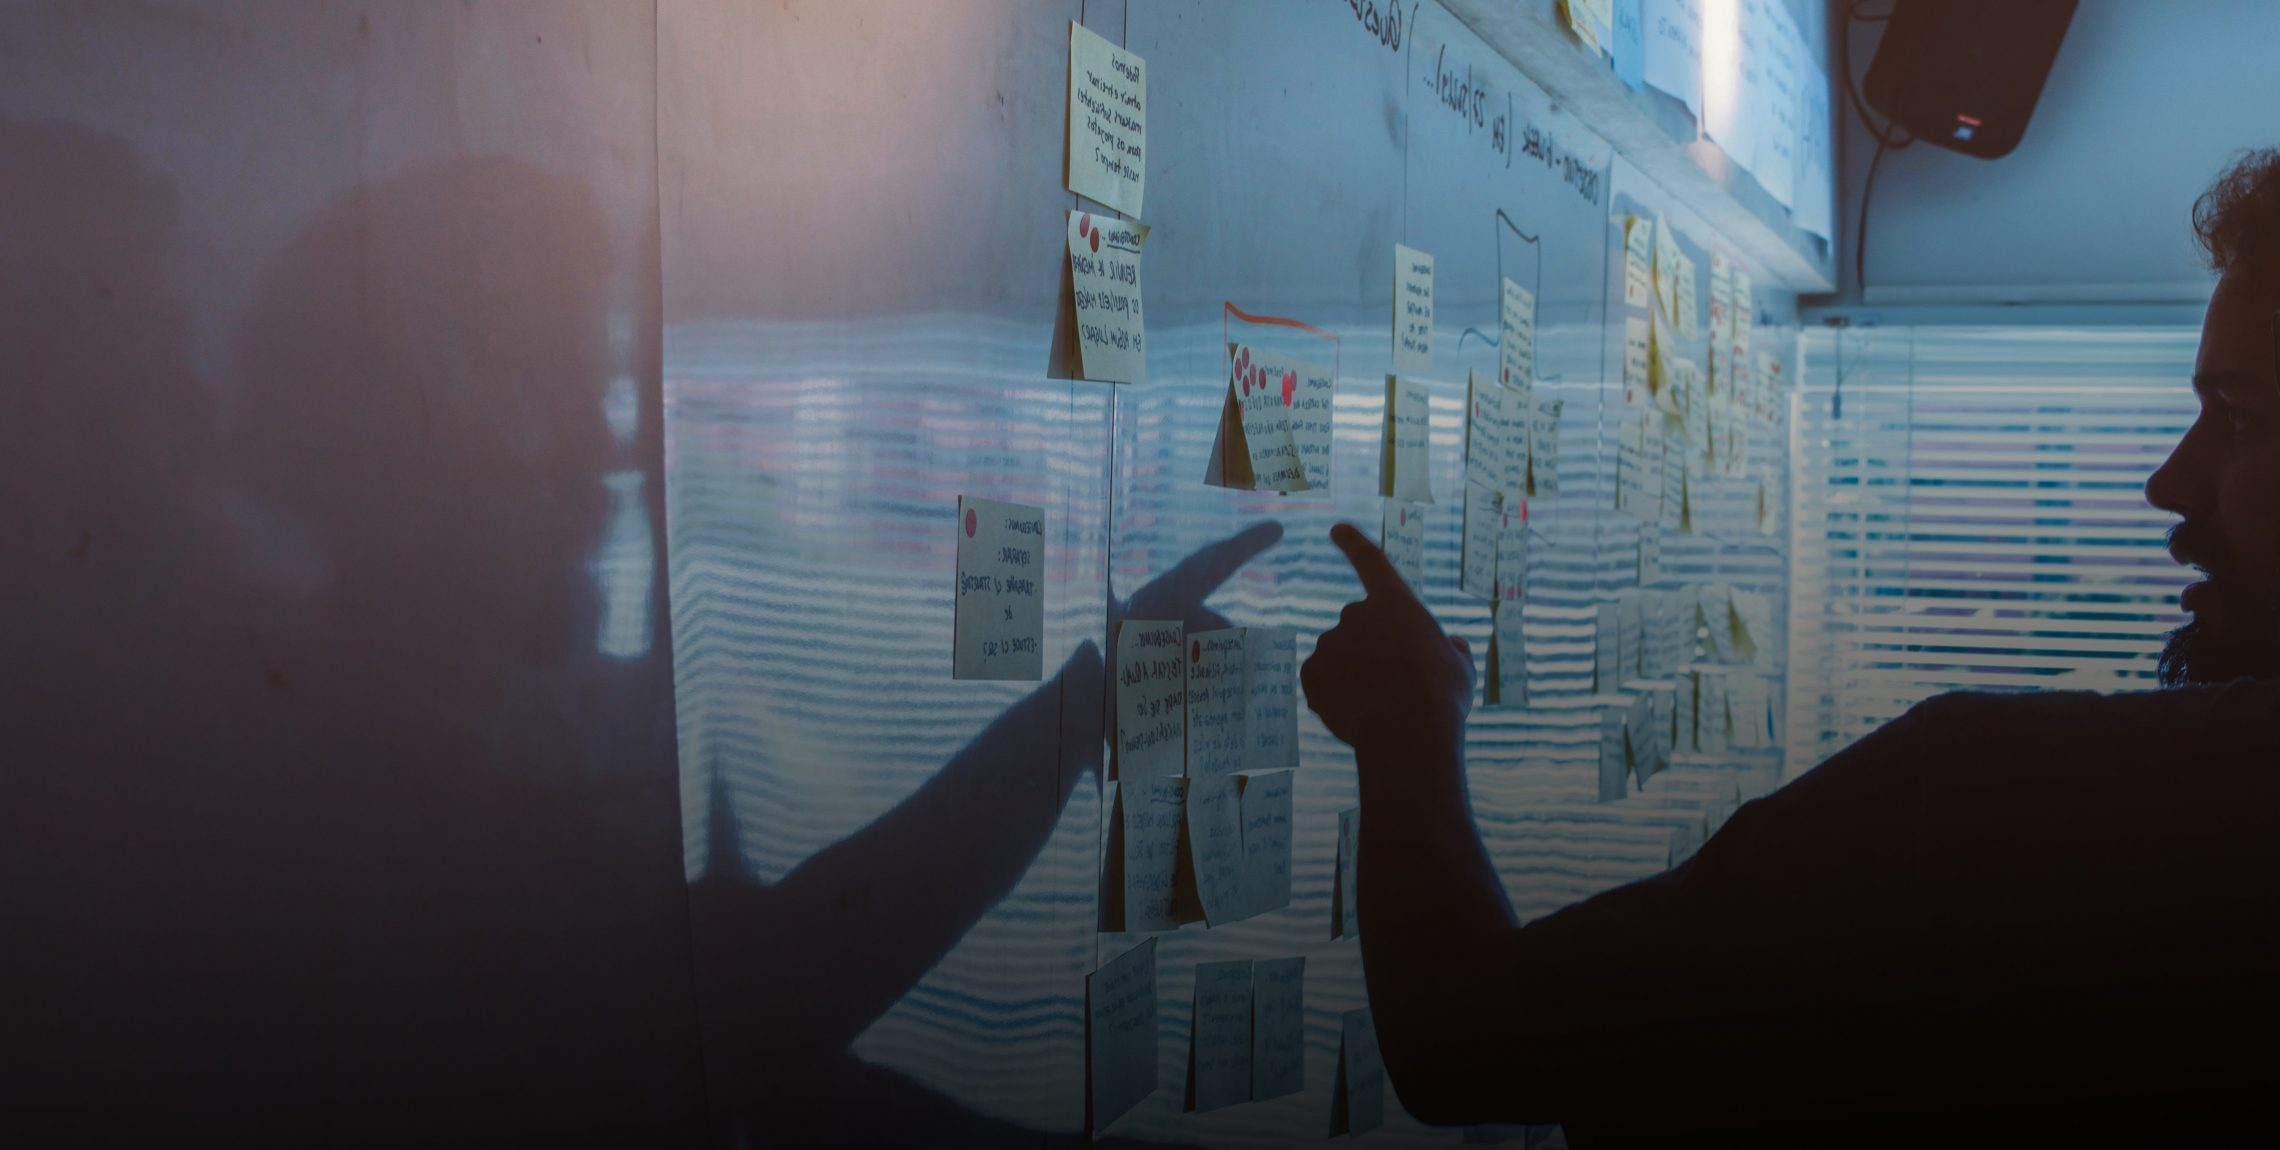 UX Designer placing post-it notes on a whiteboard